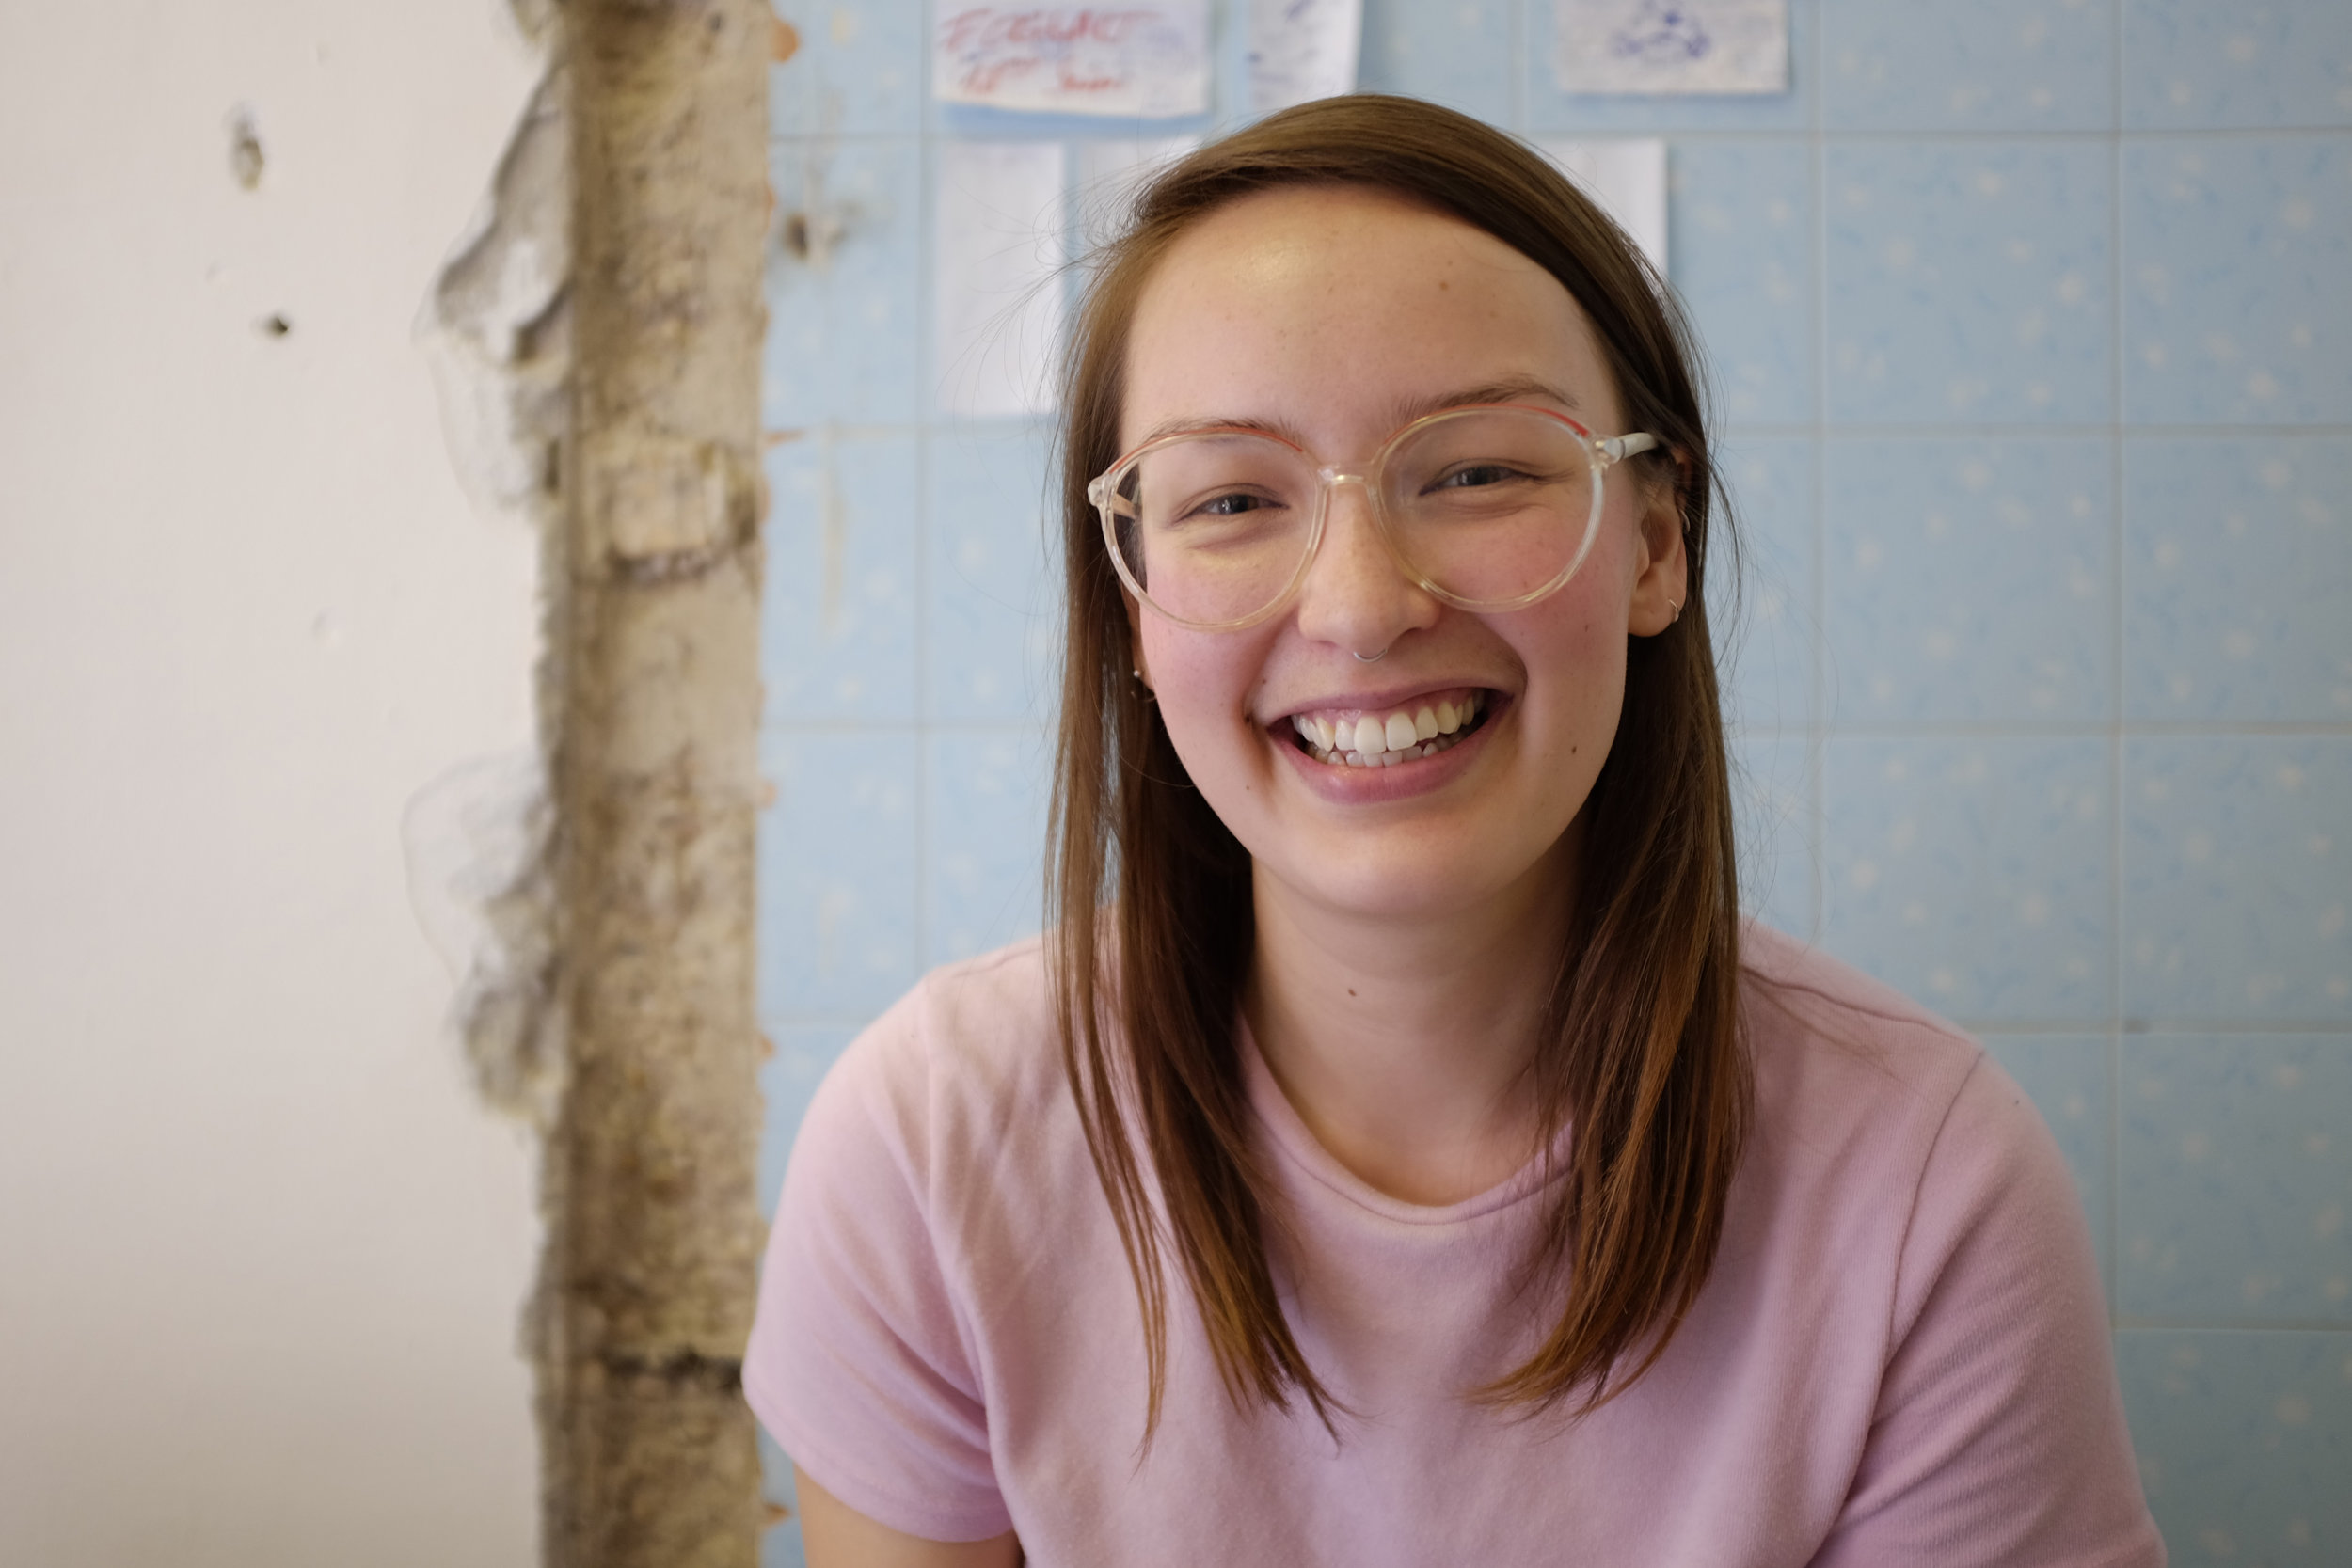 Hannah Lau-Walker   Hannah is a London based animator who works for a range of commercial projects. During the residency she has been introduced to the world of printmaking and has been focussed on developing her storytelling skills.   More